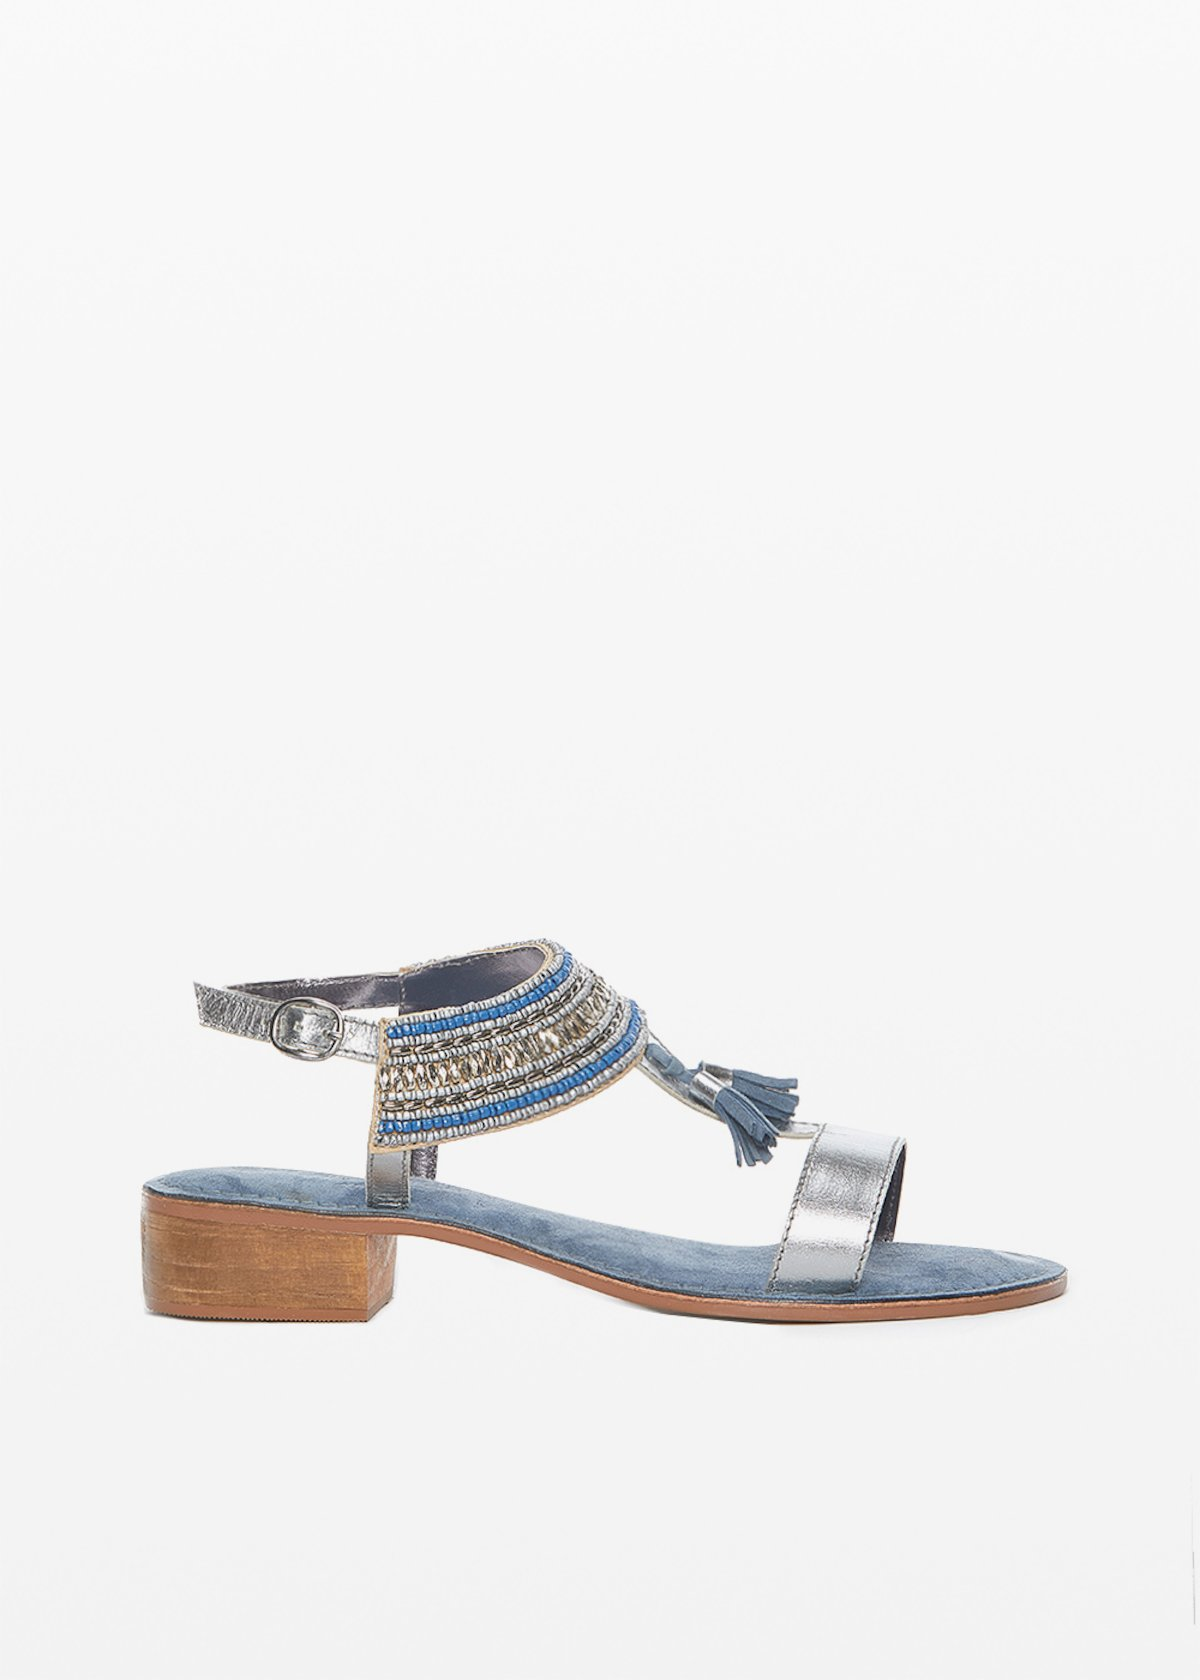 Sydney sandals with embroidery detail and suede tassels - Avion /  Silver - Woman